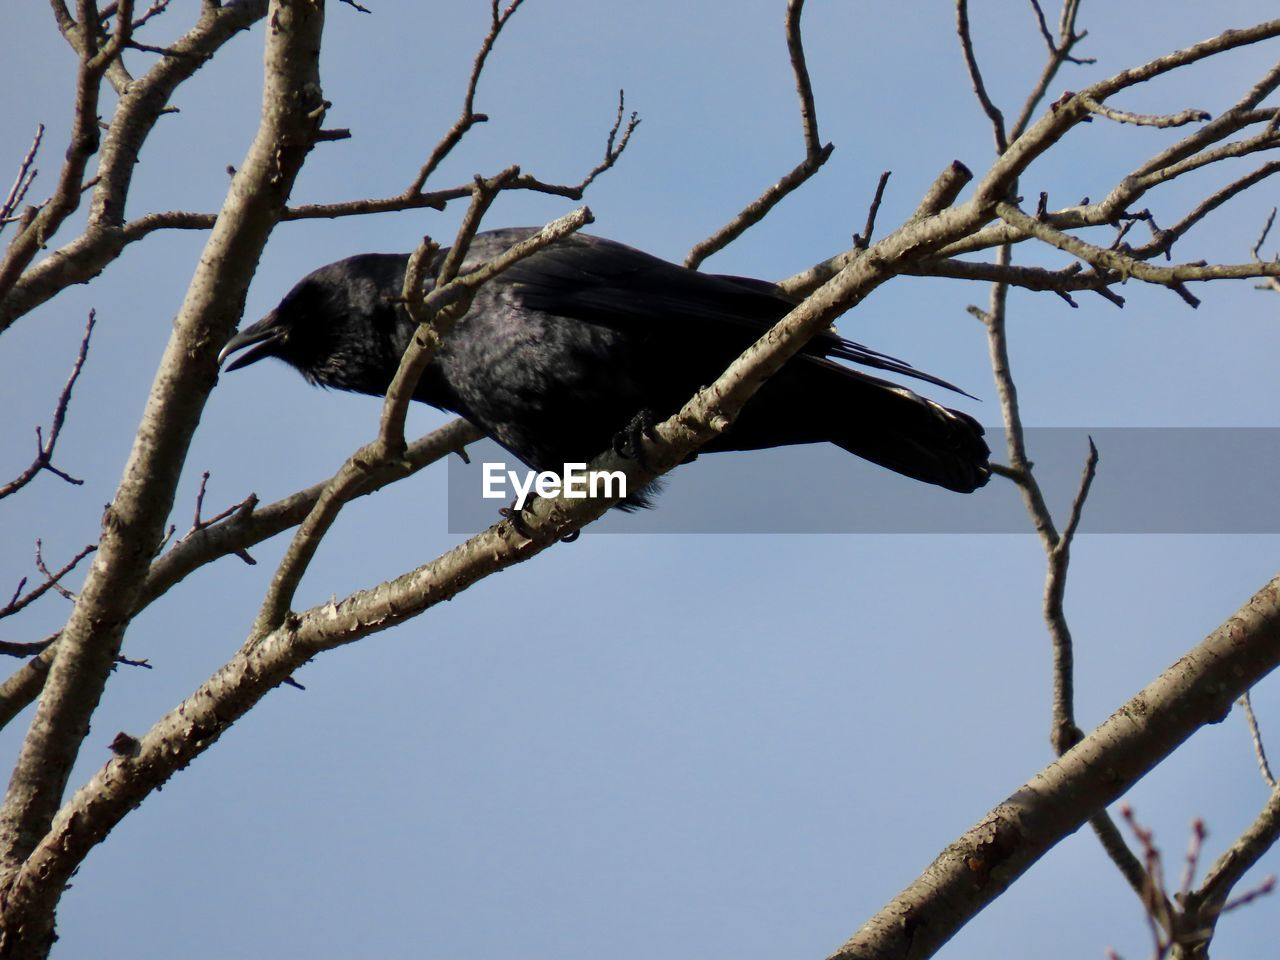 bird, animal themes, animal, branch, animal wildlife, one animal, low angle view, vertebrate, animals in the wild, tree, sky, plant, perching, nature, no people, clear sky, day, outdoors, bare tree, blue